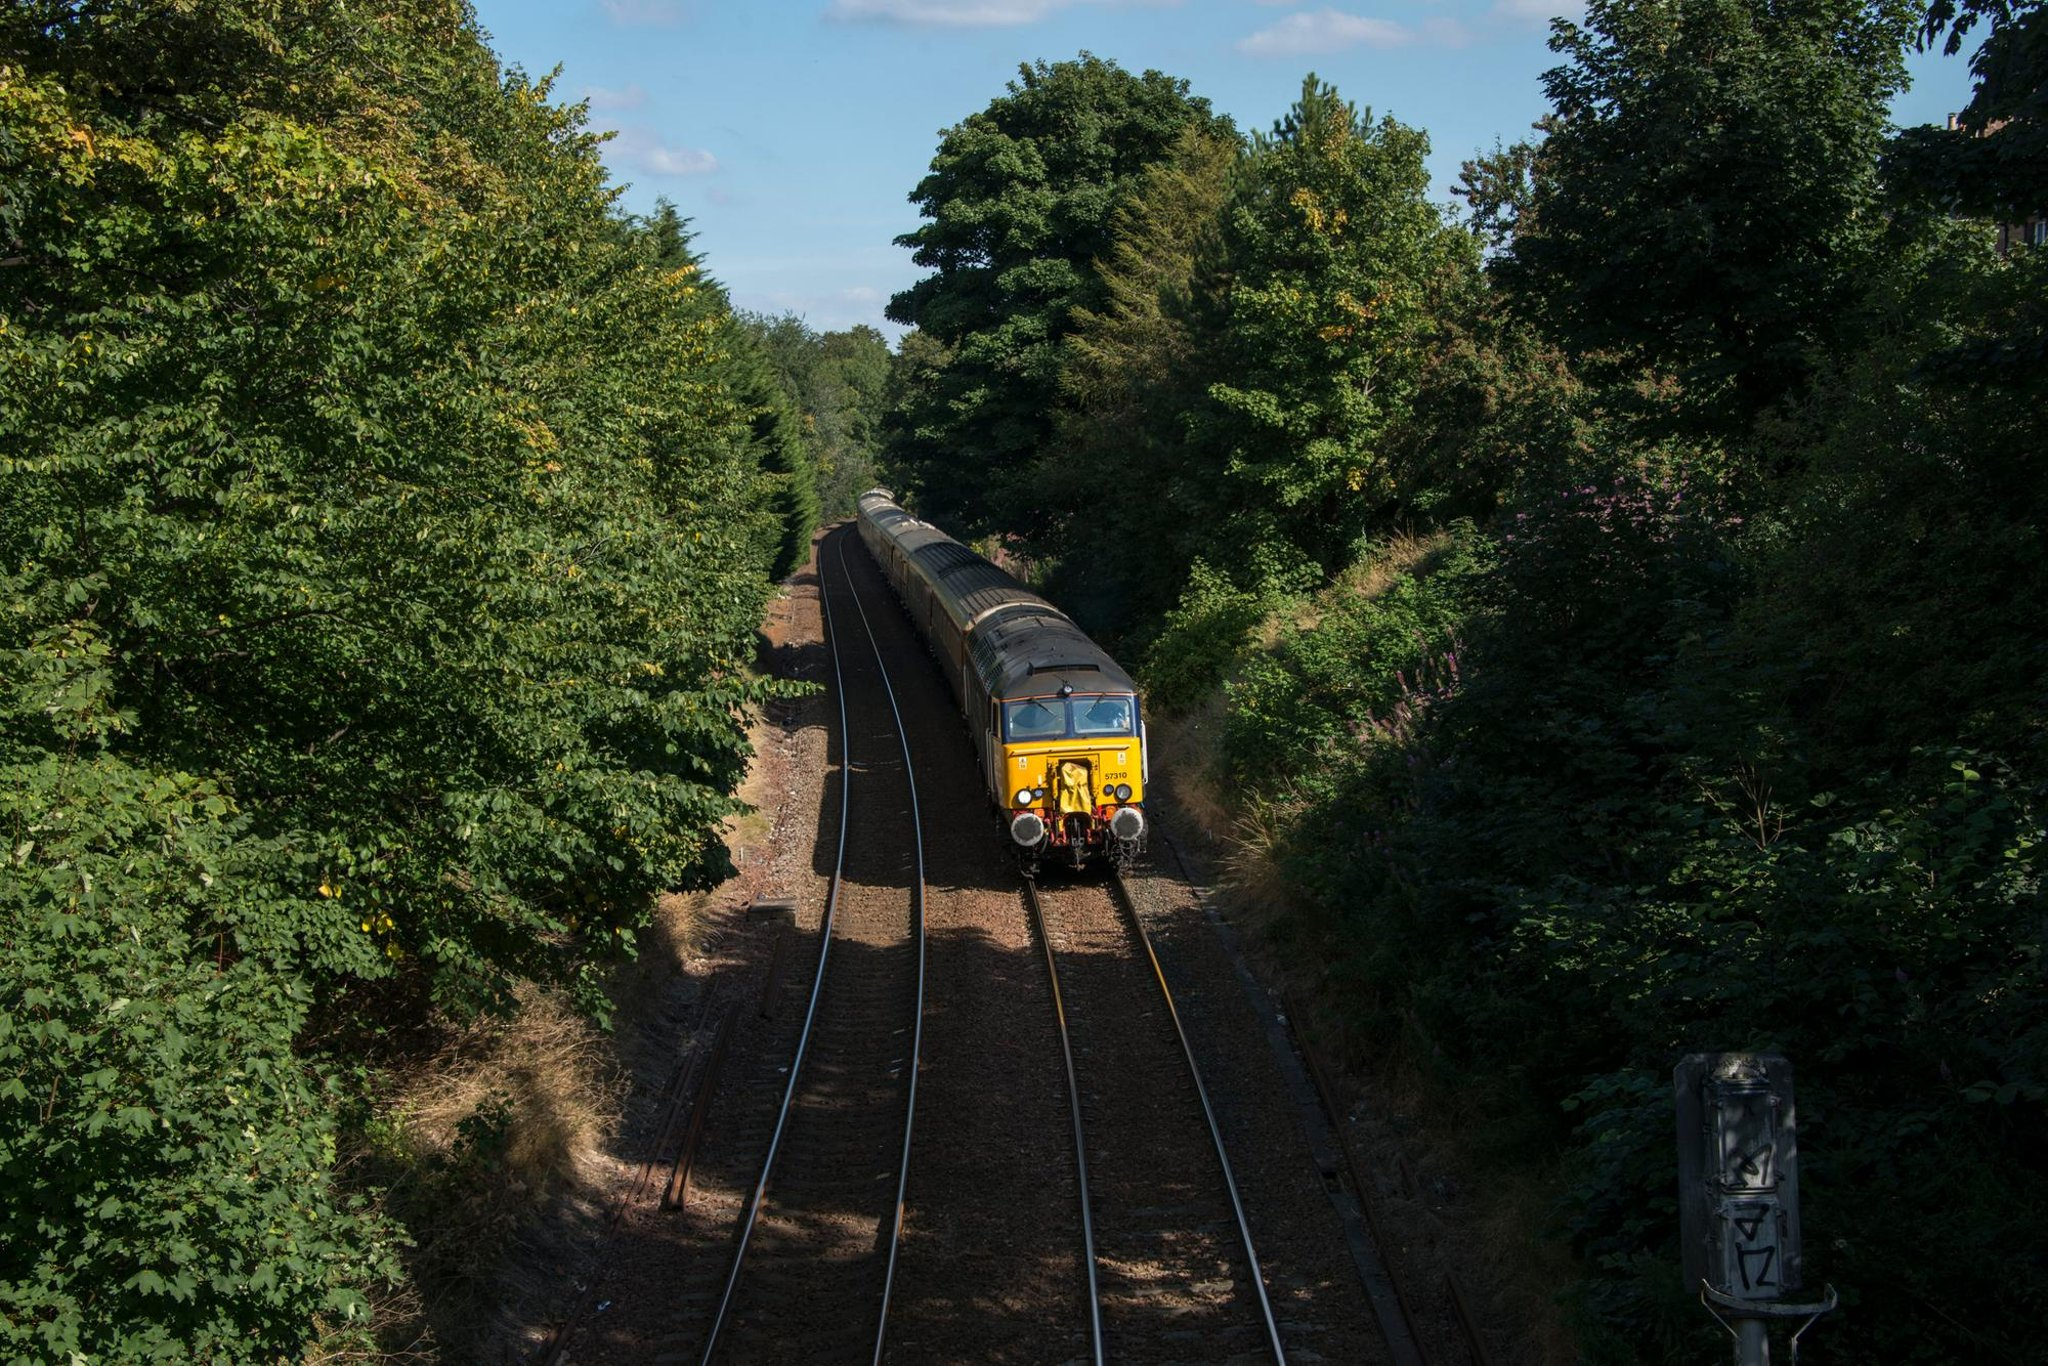 Lib Dem candidate calls for Edinburgh's South Sub rail line to reopen as train alternative to City Bypass